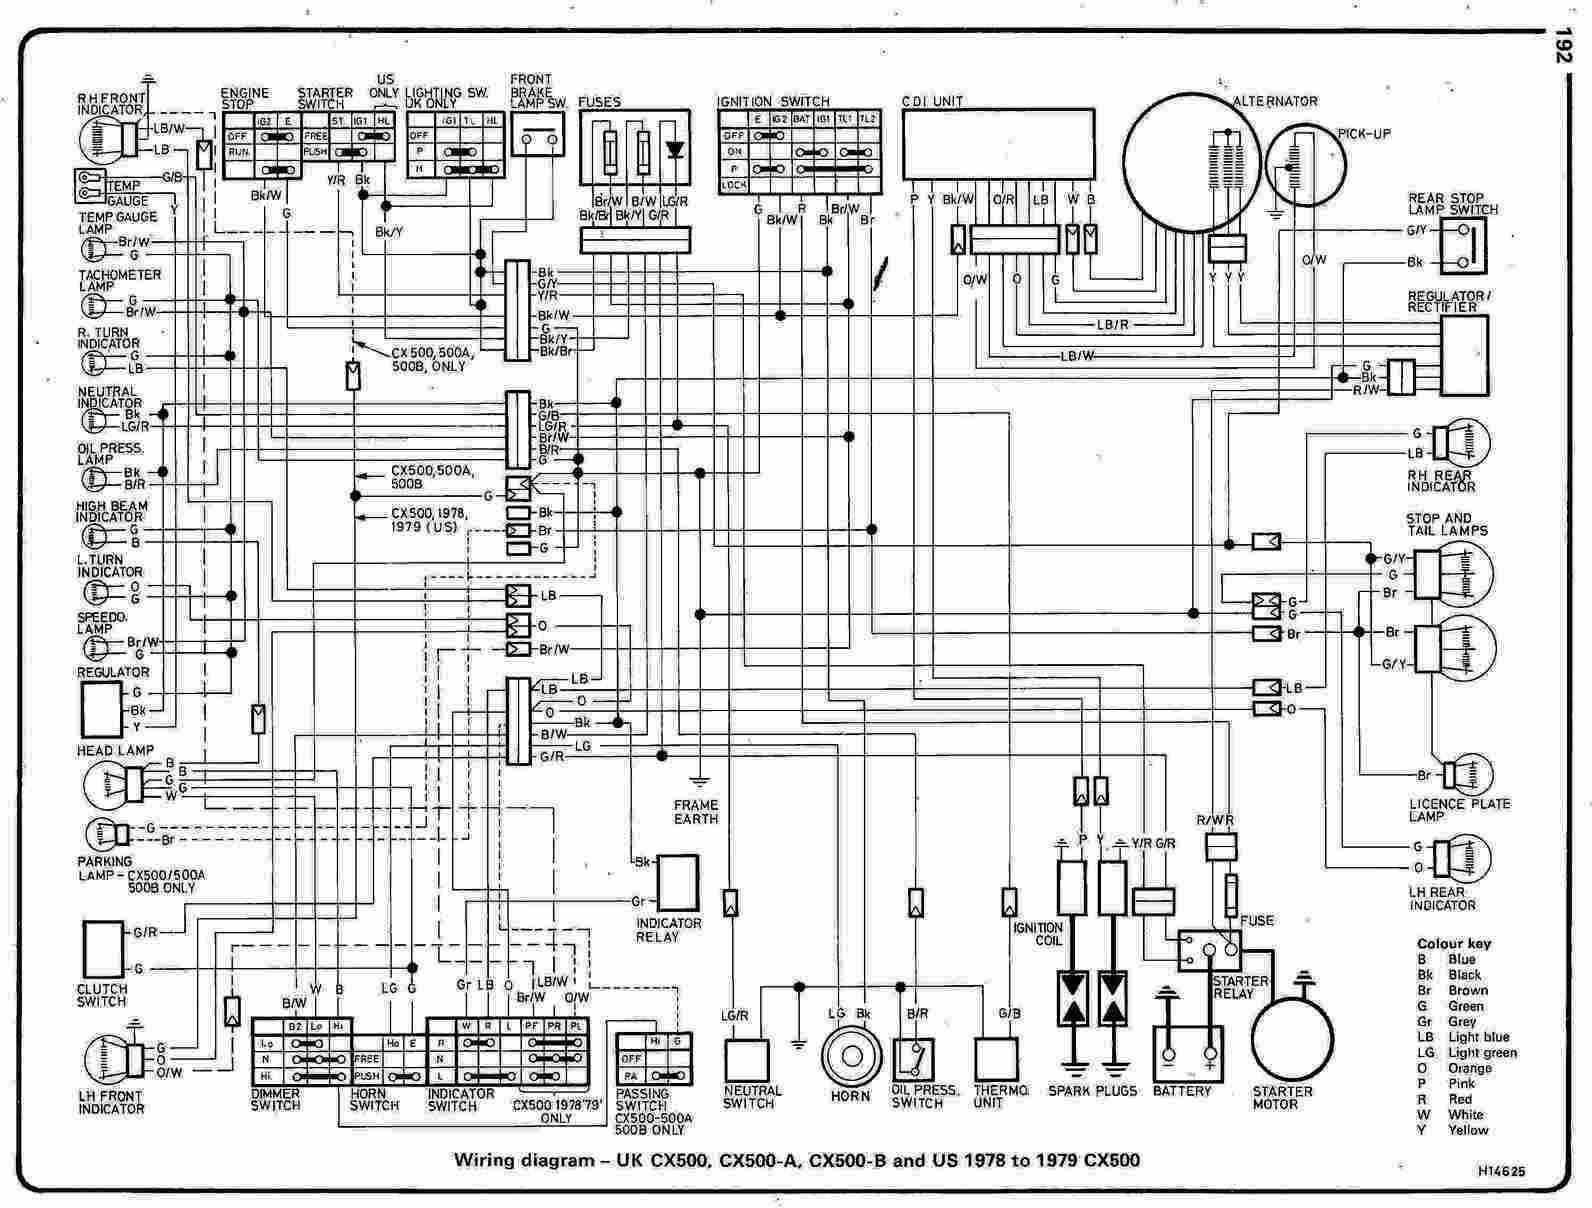 cx500 wiring diagram (general) cafe racers honda cx500, hondacx500 wiring diagram (general)